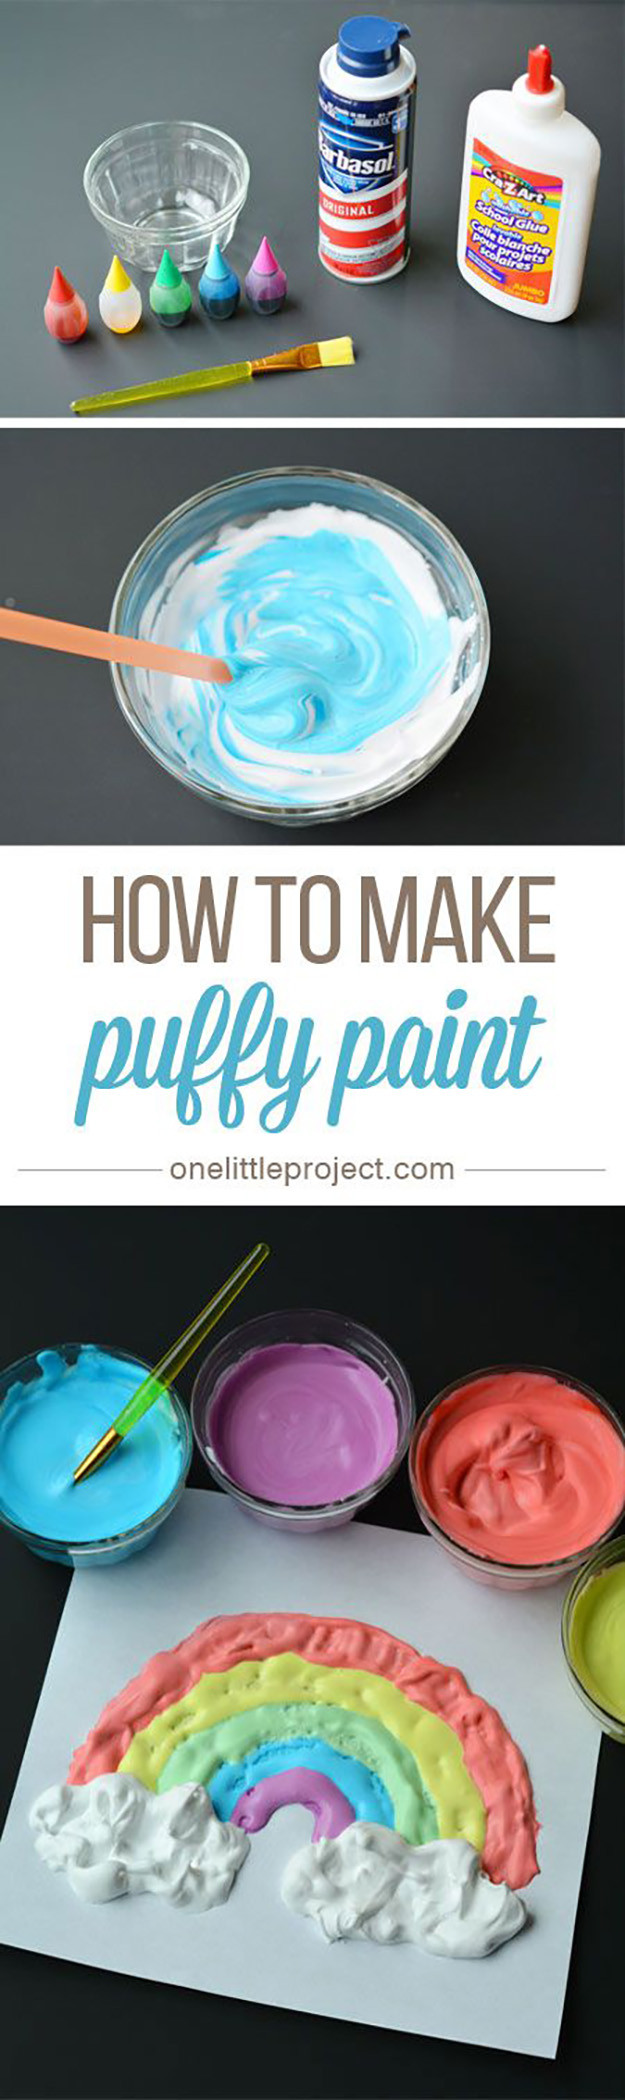 Best ideas about DIY Kids Paint . Save or Pin 21 Easy DIY Paint Recipes Your Kids Will Go Crazy For Now.